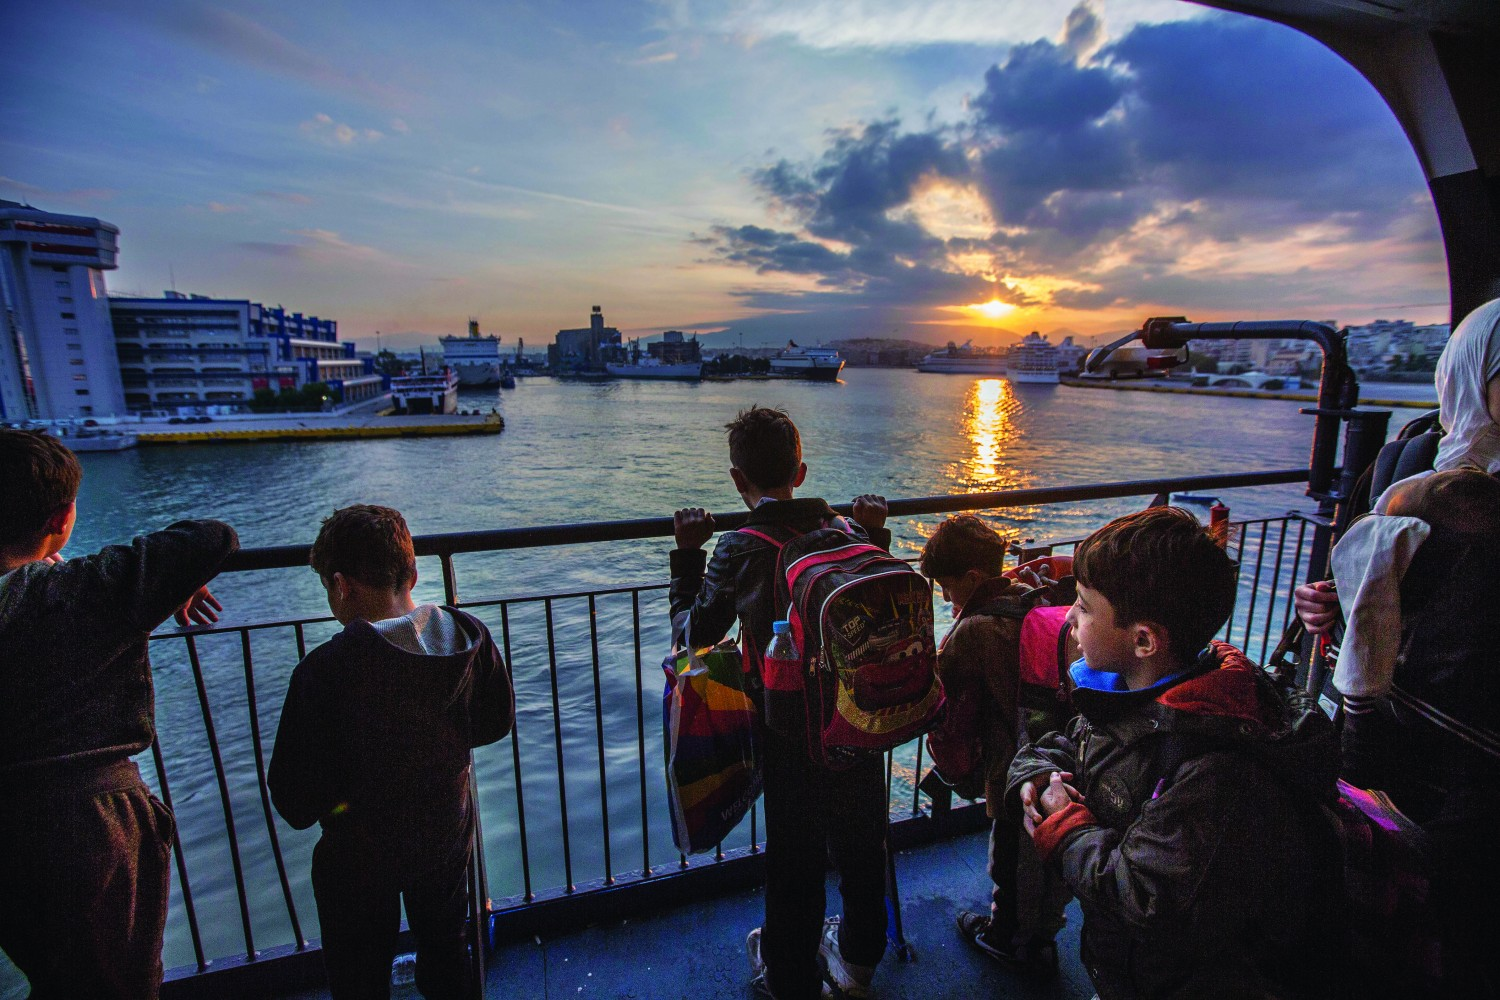 Syrian migrant children arrive to a new dawn as their ferry docks in athens. Pic:Mark Condren 9.10.2015